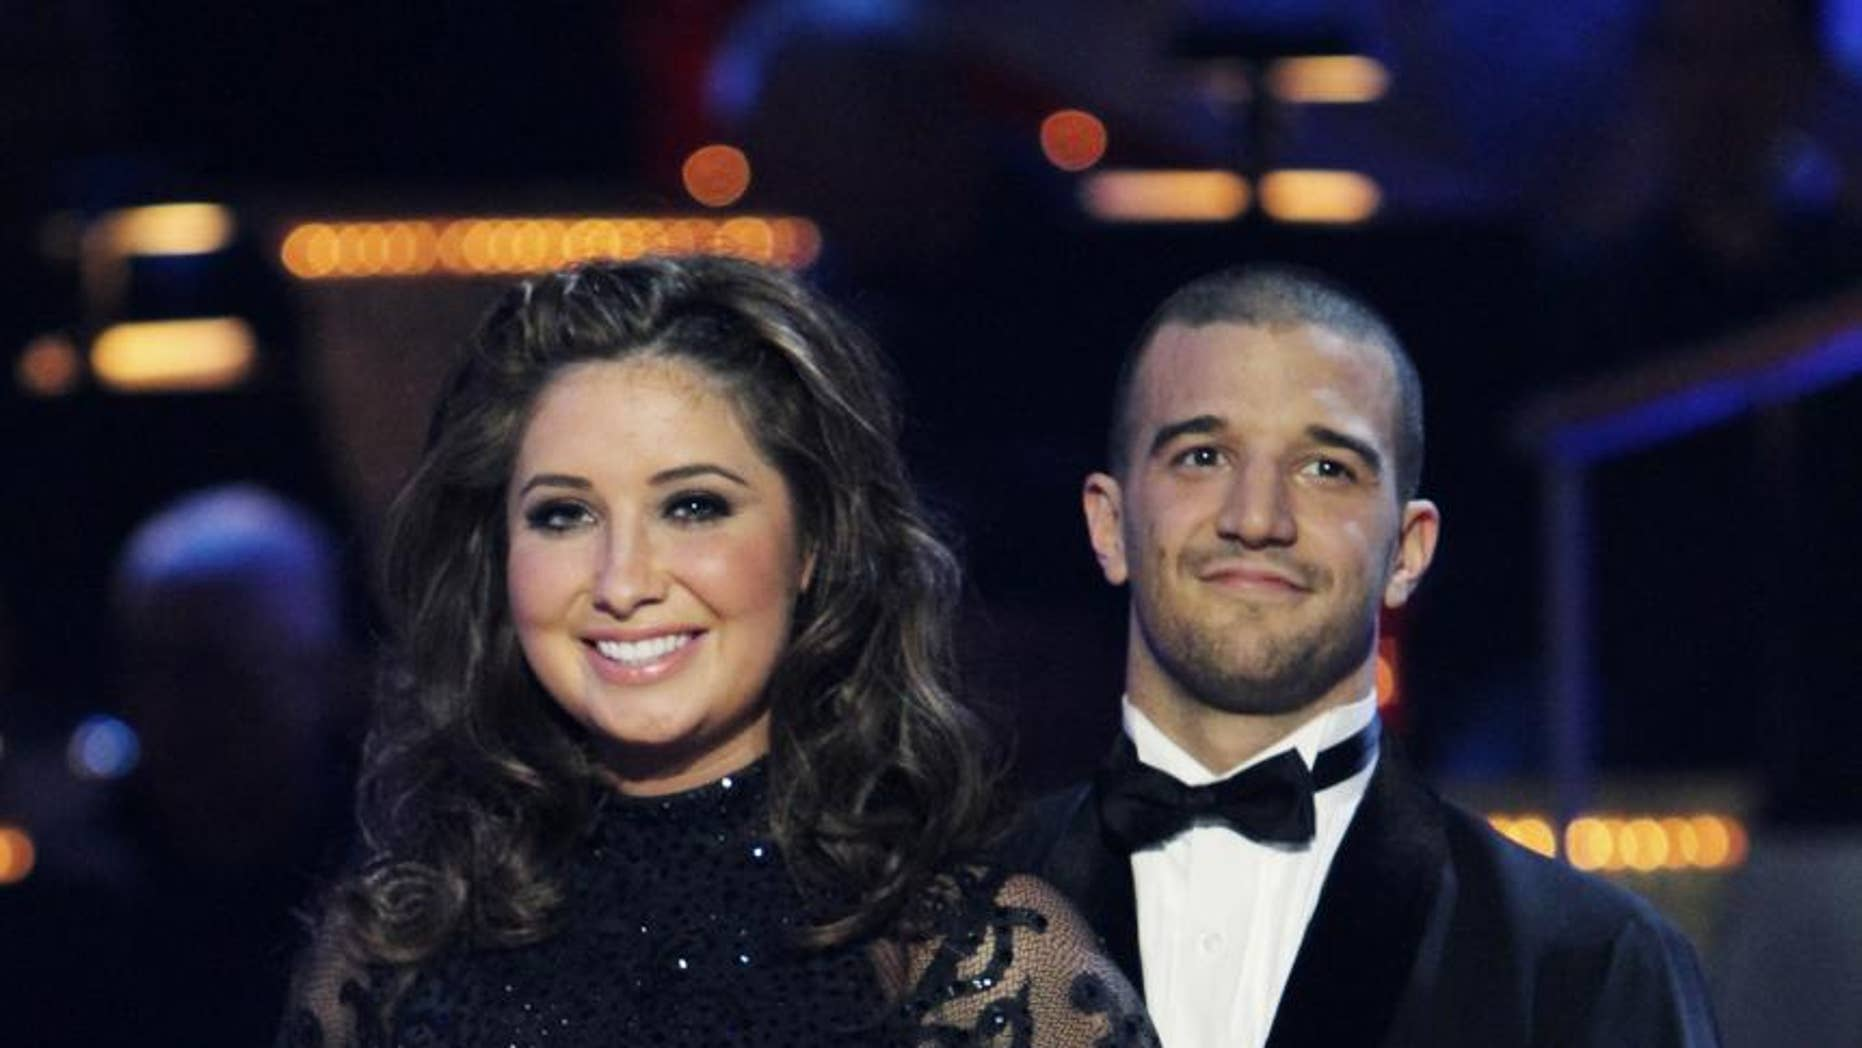 "In this publicity image released by ABC, Bristol Palin, left, and her partner Mark Ballas are shown after their performance on the celebrity dance competition series, ""Dancing with the Stars,"" on Monday, Nov. 22, 2010 in Los Angeles. (AP Photo/ABC, Adam Larkey)"